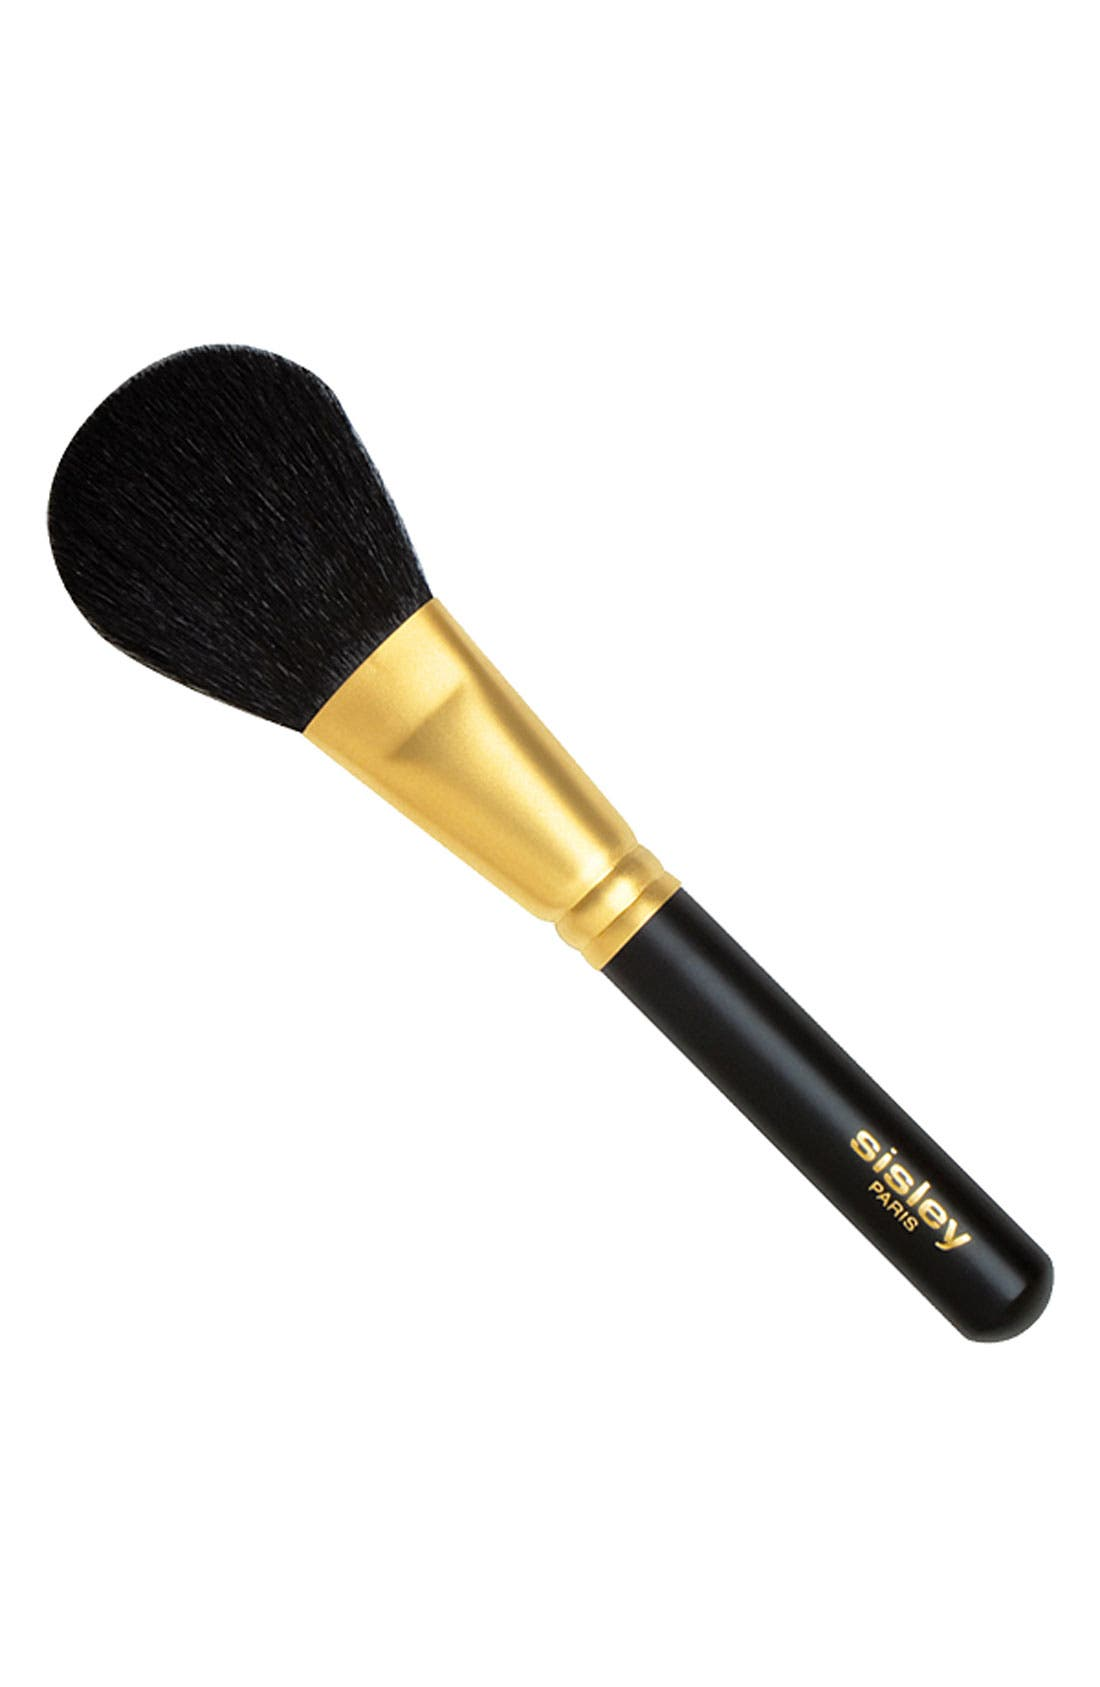 What it is: Loose Powder Brush, or Pinceau Poudre Sous Pouchette, is ideal for quick and easy makeup application. Who it\\\'s for: Anyone who wants an easy-to-use powder brush. What it does: Designed with ultrasoft, flexible, fine and high-quality natural bristles, this brush allows you to apply loose powder for a natural or full-coverage look. How to use: For a natural look, lightly load the brush with powder, tap off excess on the back of your hand,